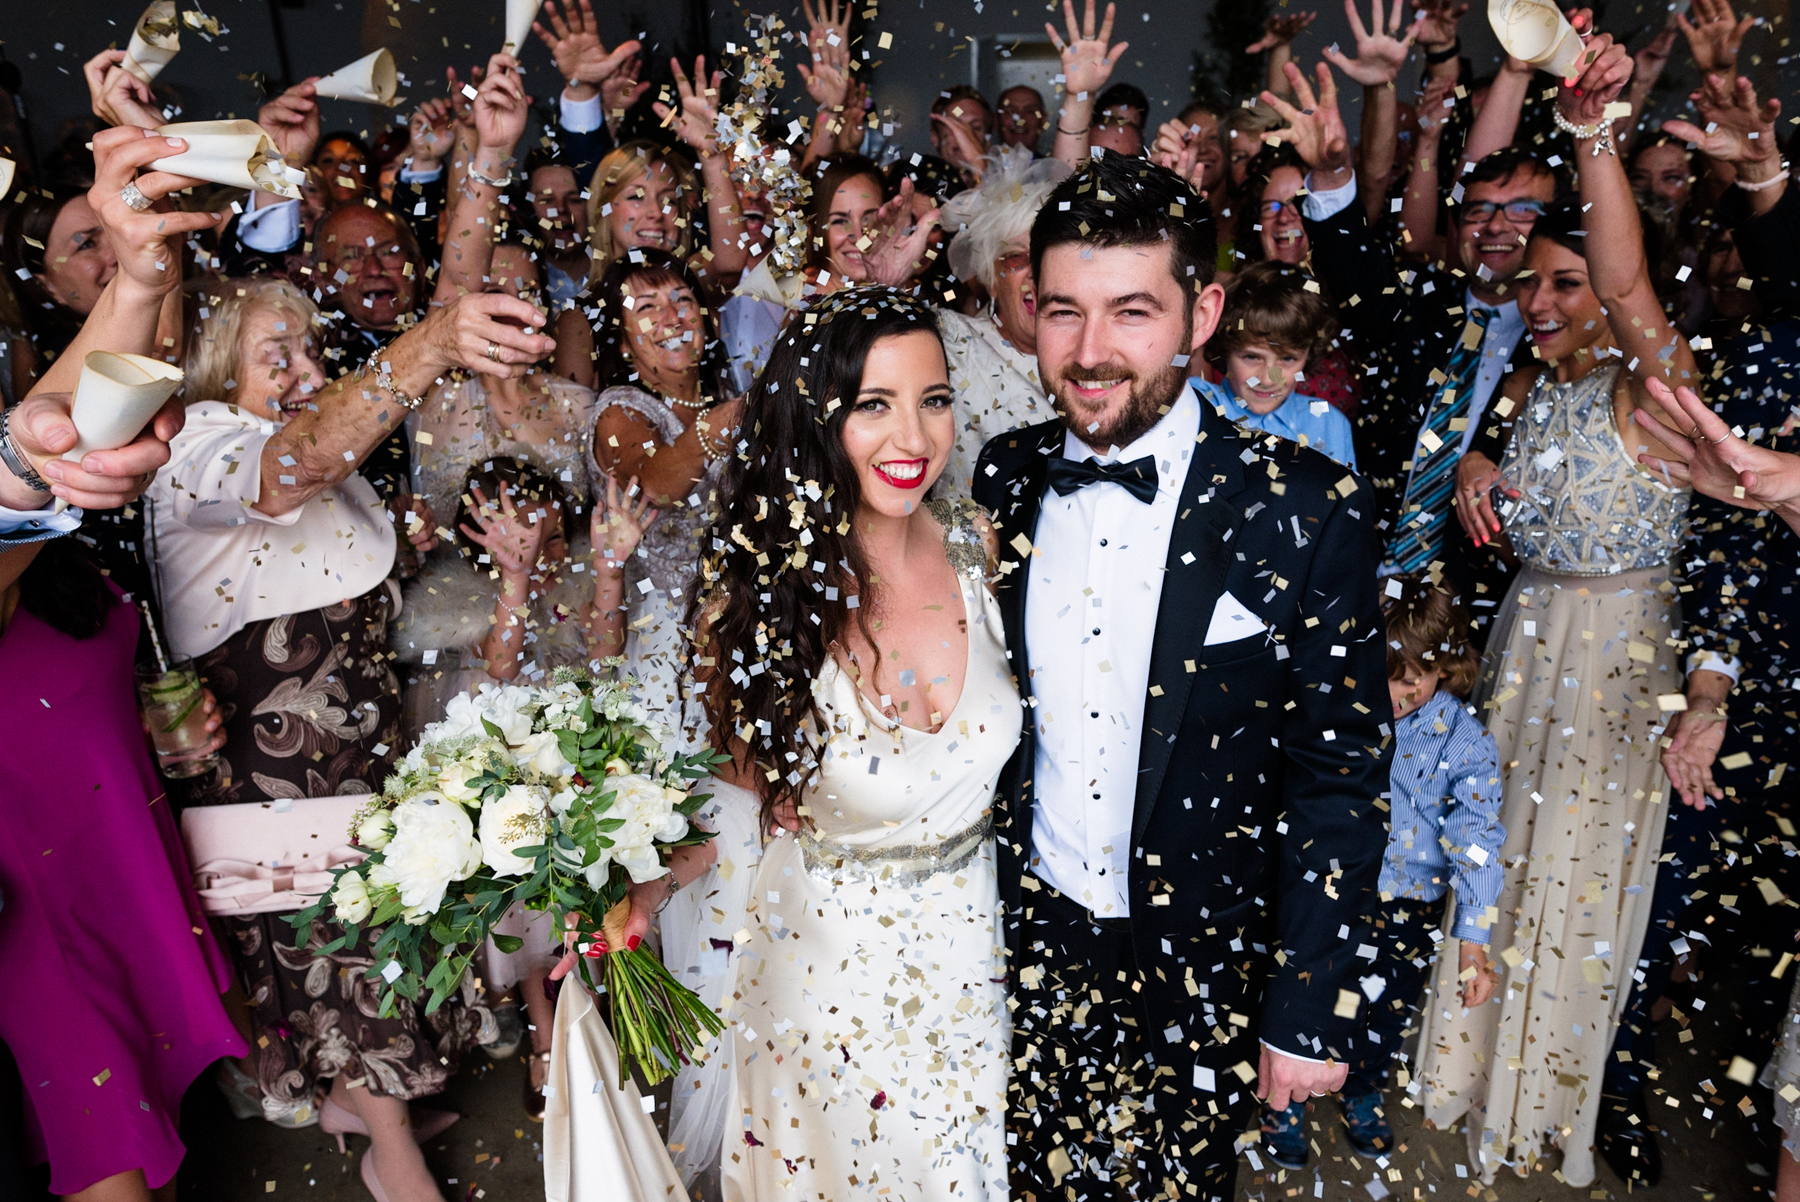 The Chainstore wedding Confetti shower